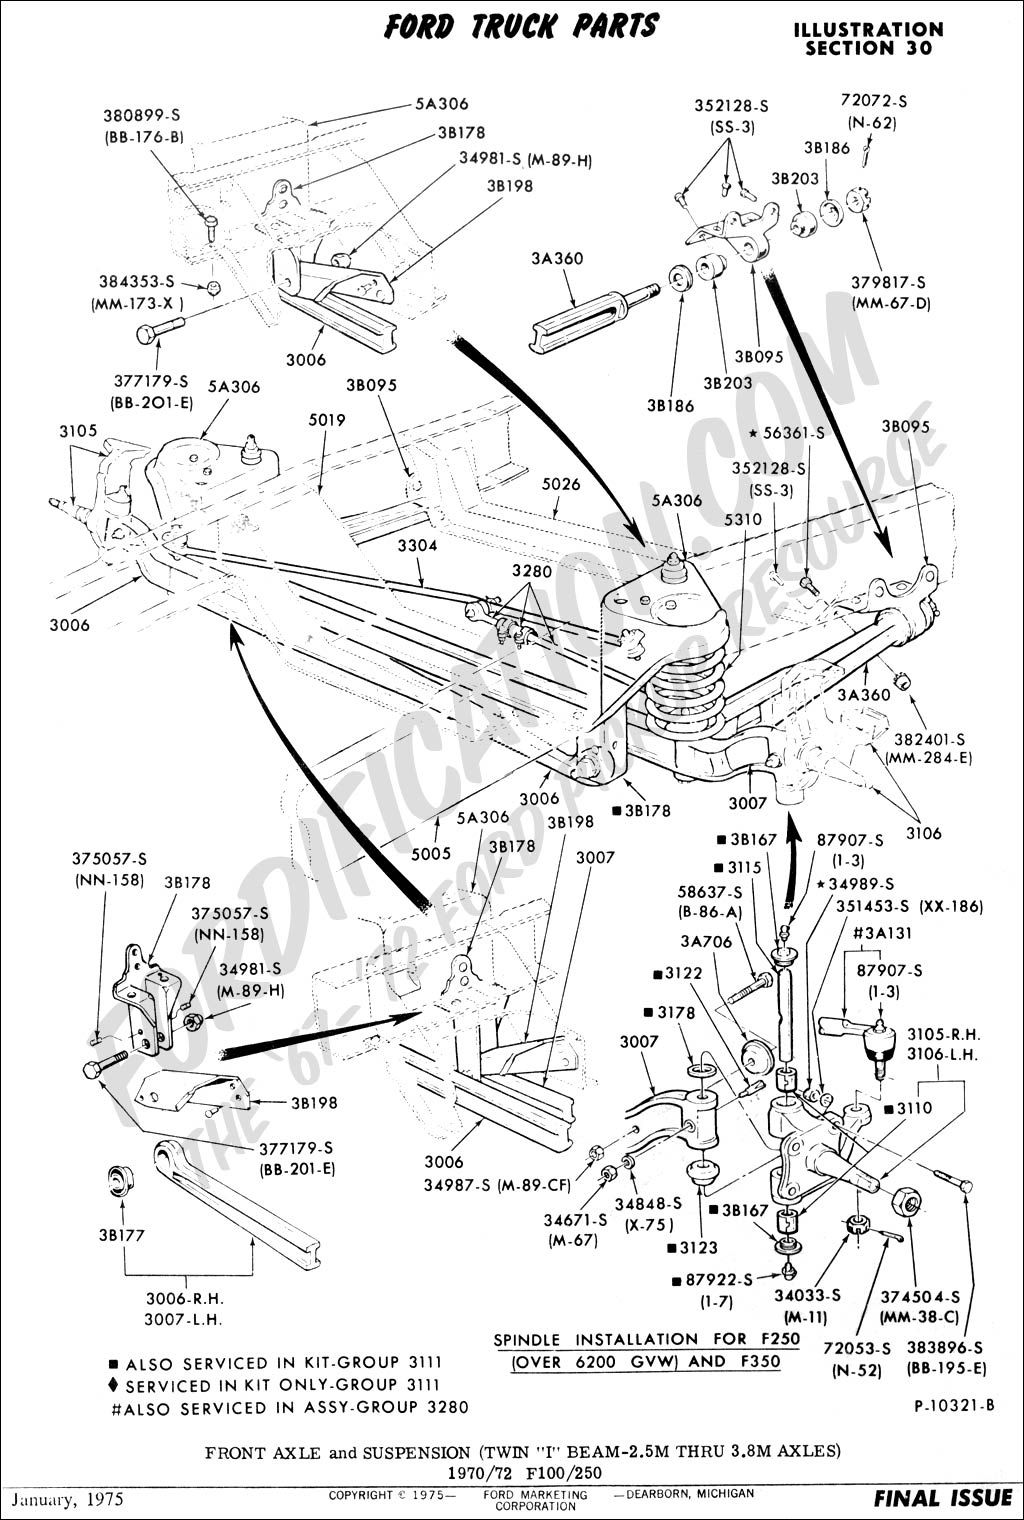 Ford E 150 Parts Diagram : parts, diagram, Truck, Technical, Schematics, Section, Front, Emblies, Suspensions, F150,, Ford,